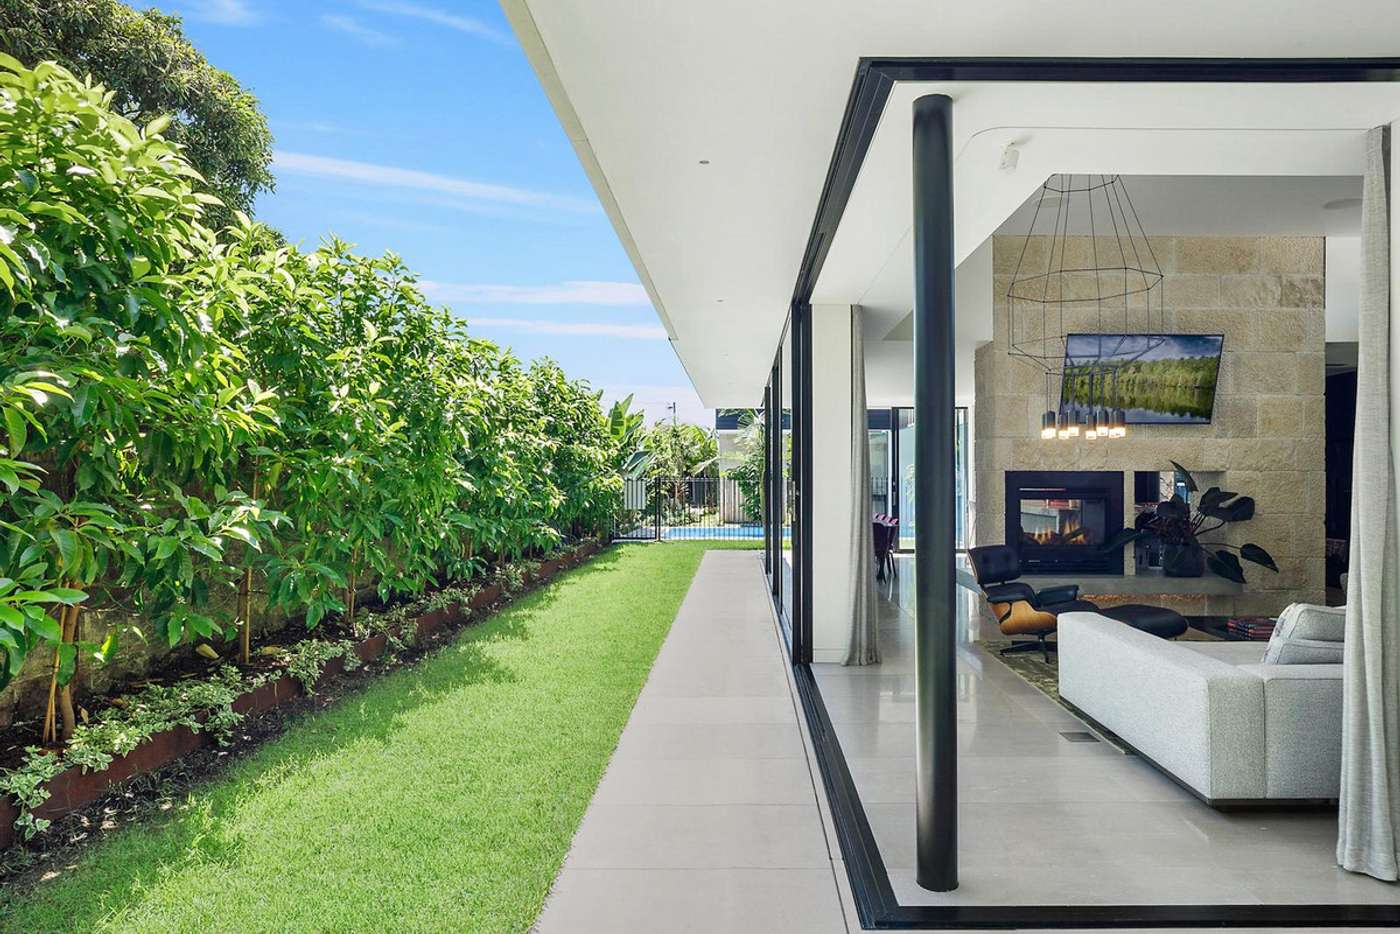 Sixth view of Homely house listing, 16 Thompson Street, Mosman NSW 2088